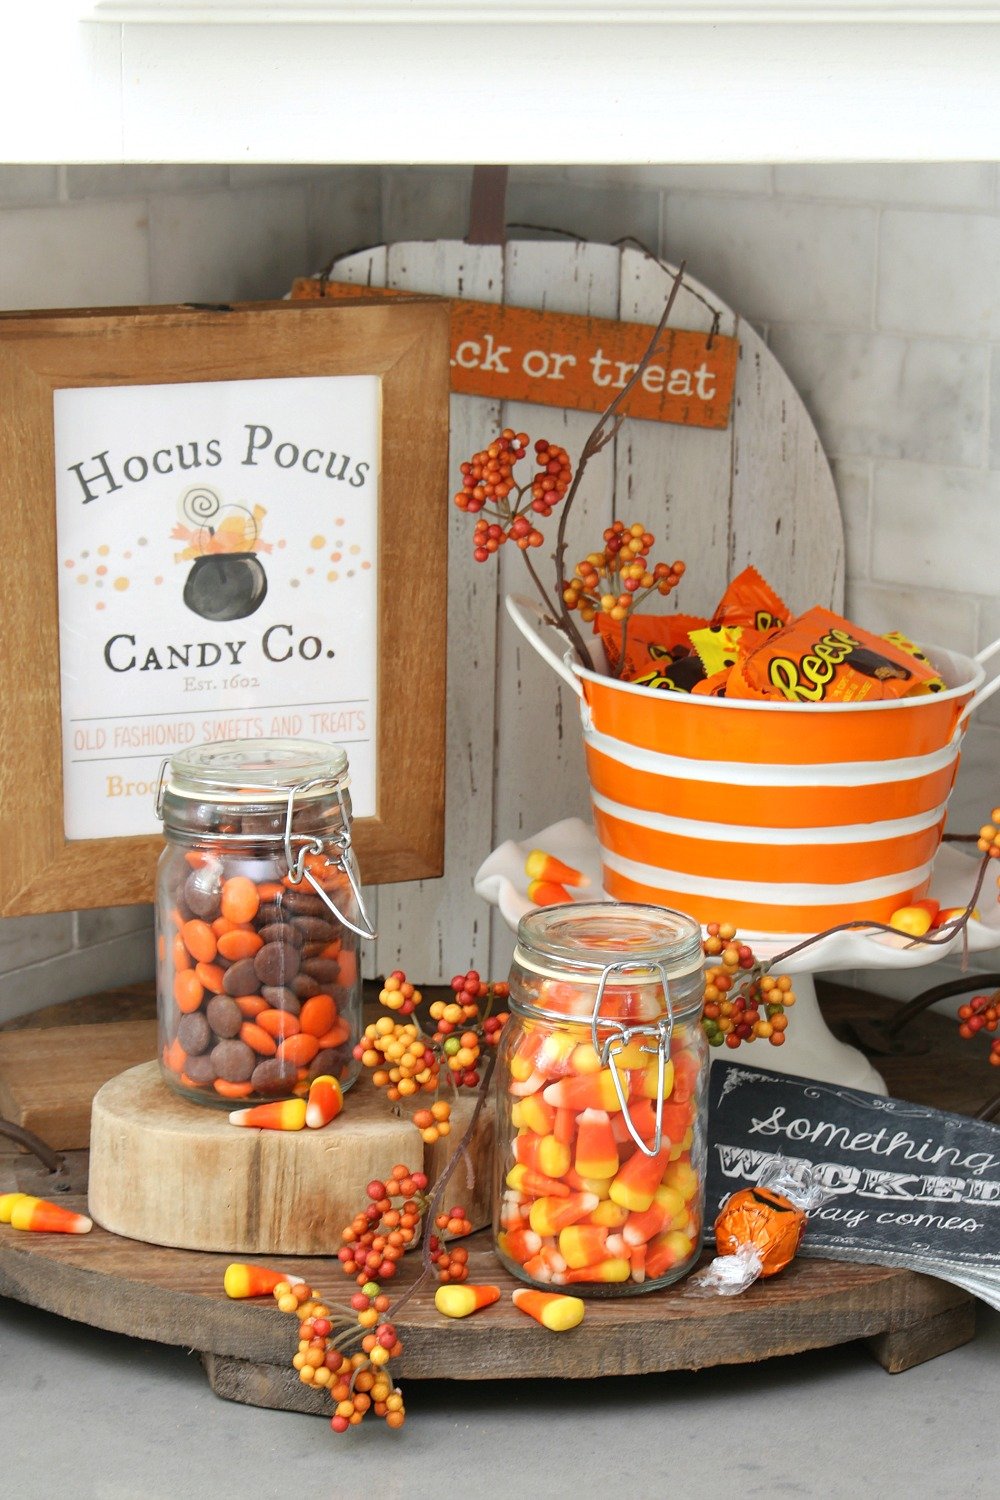 Halloween candy bar with Hocus Pocus Candy Co. free Halloween printable in a frame.